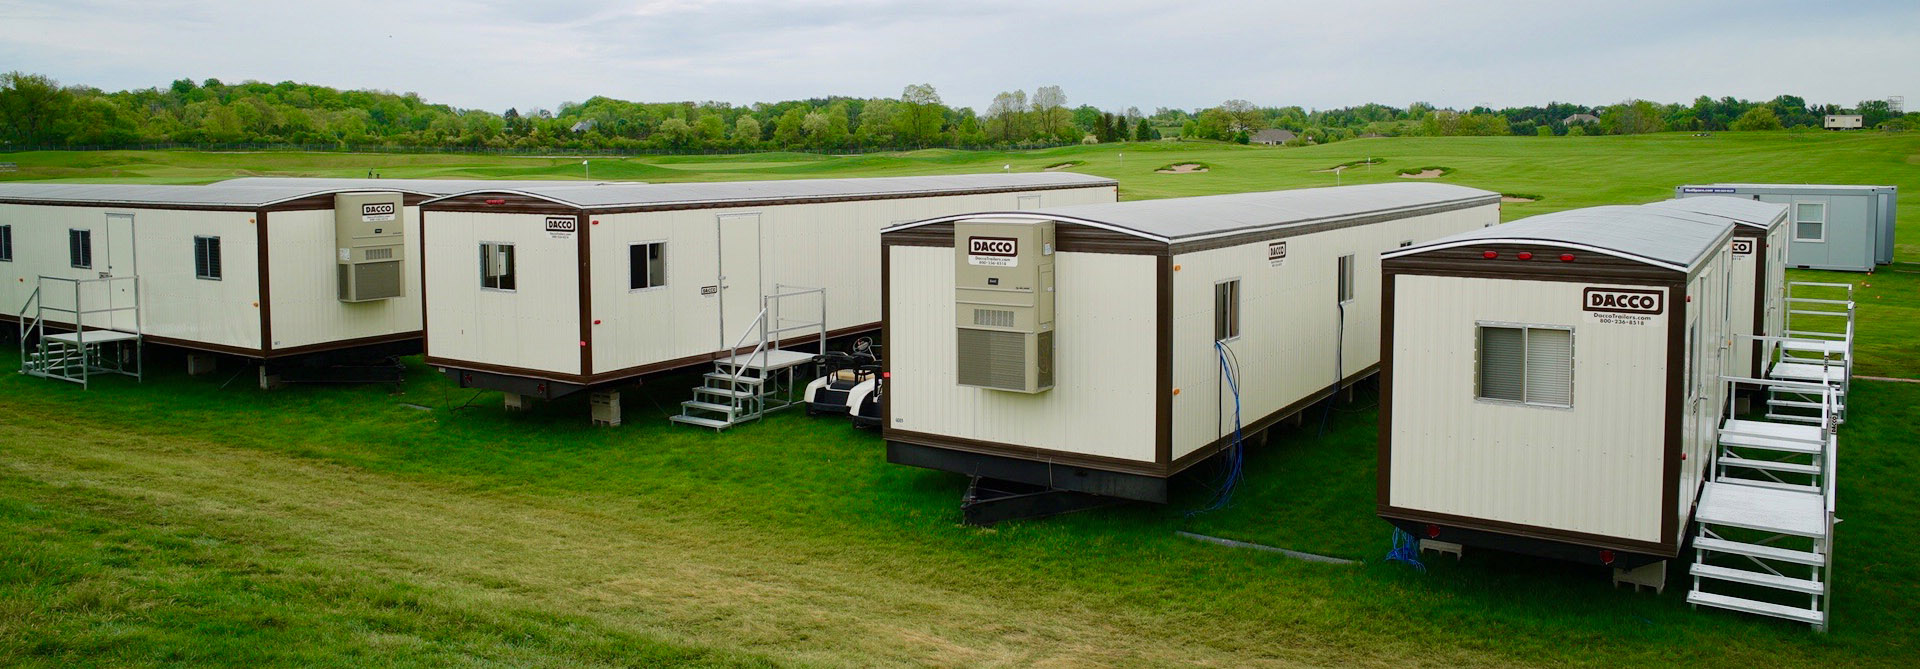 dacco office trailers at erin hills